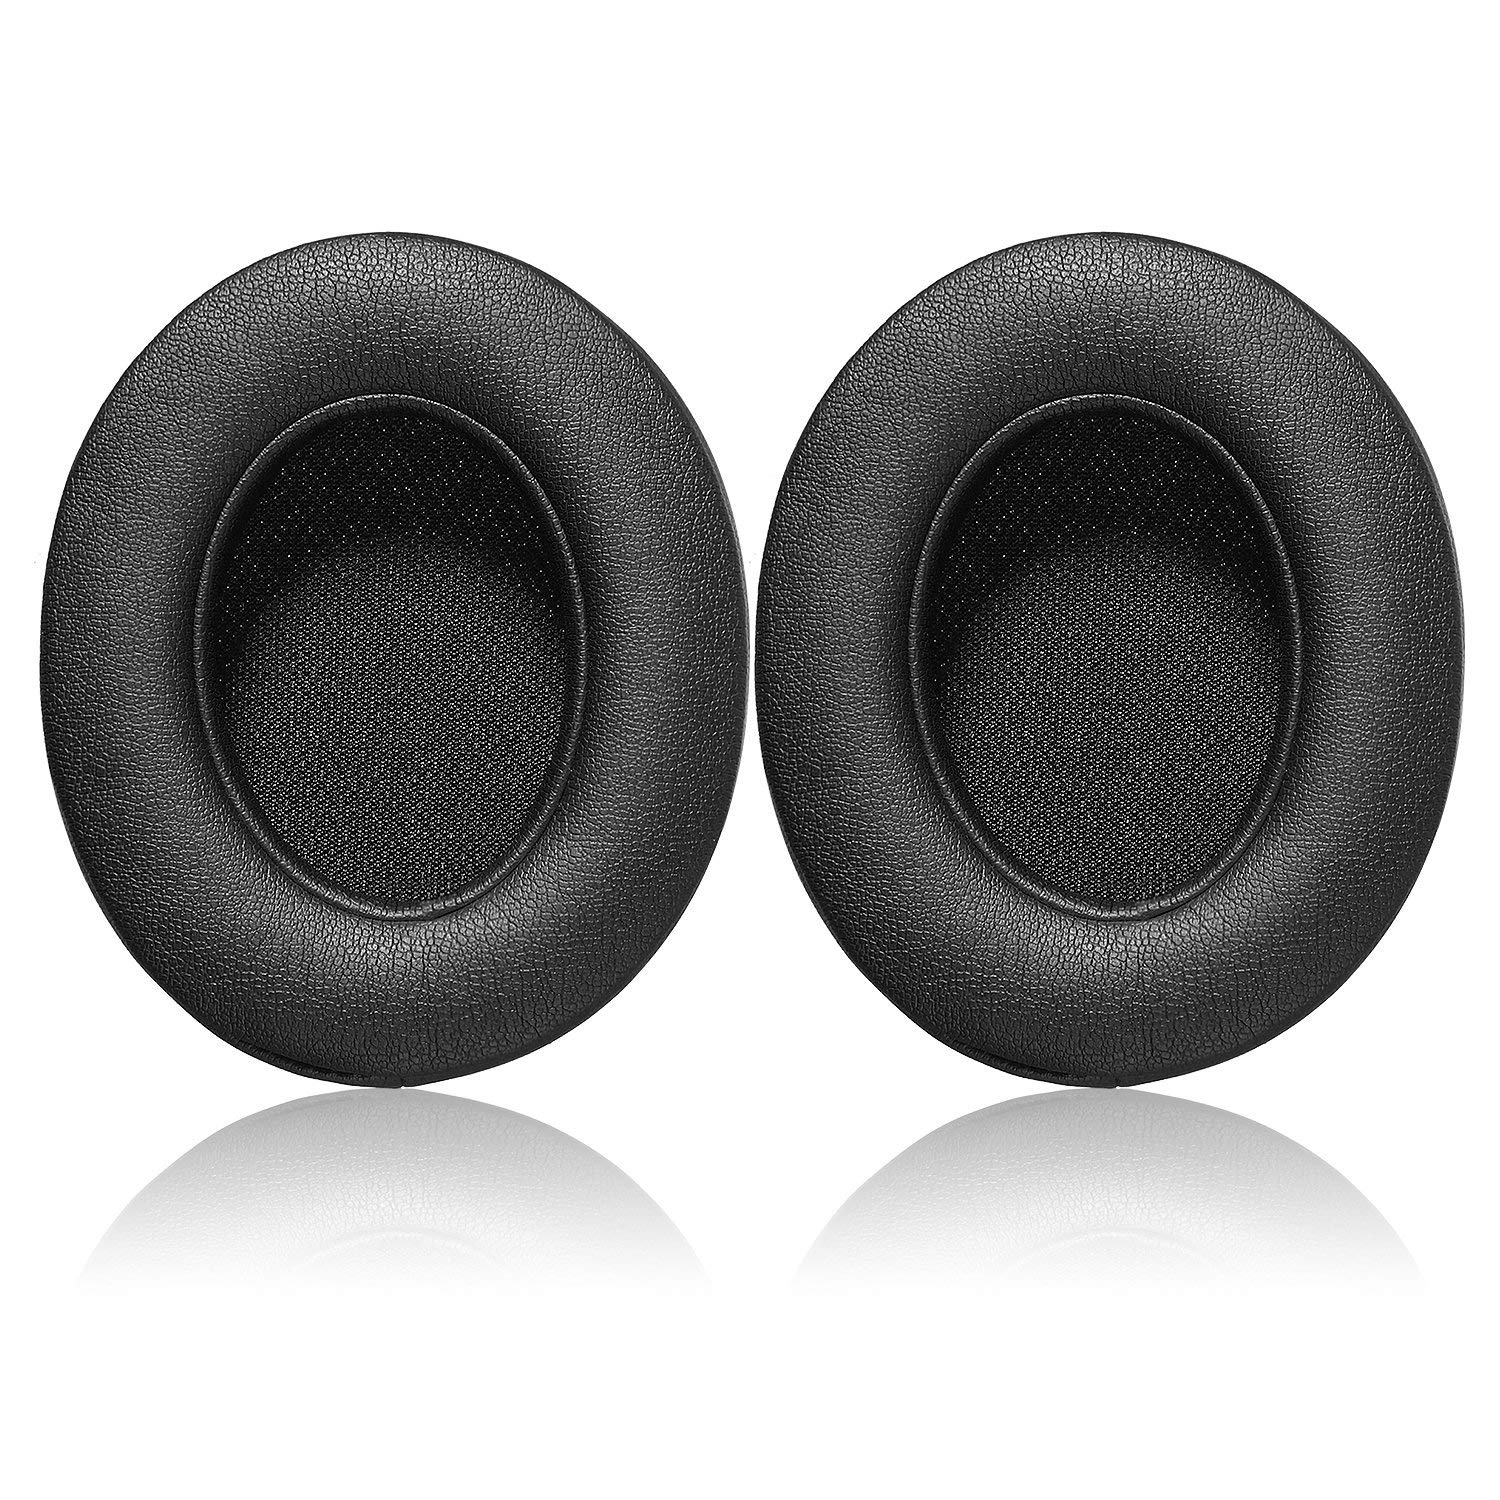 Mút Đệm Tai Nghe BEATS STUDIO2 wireless - black